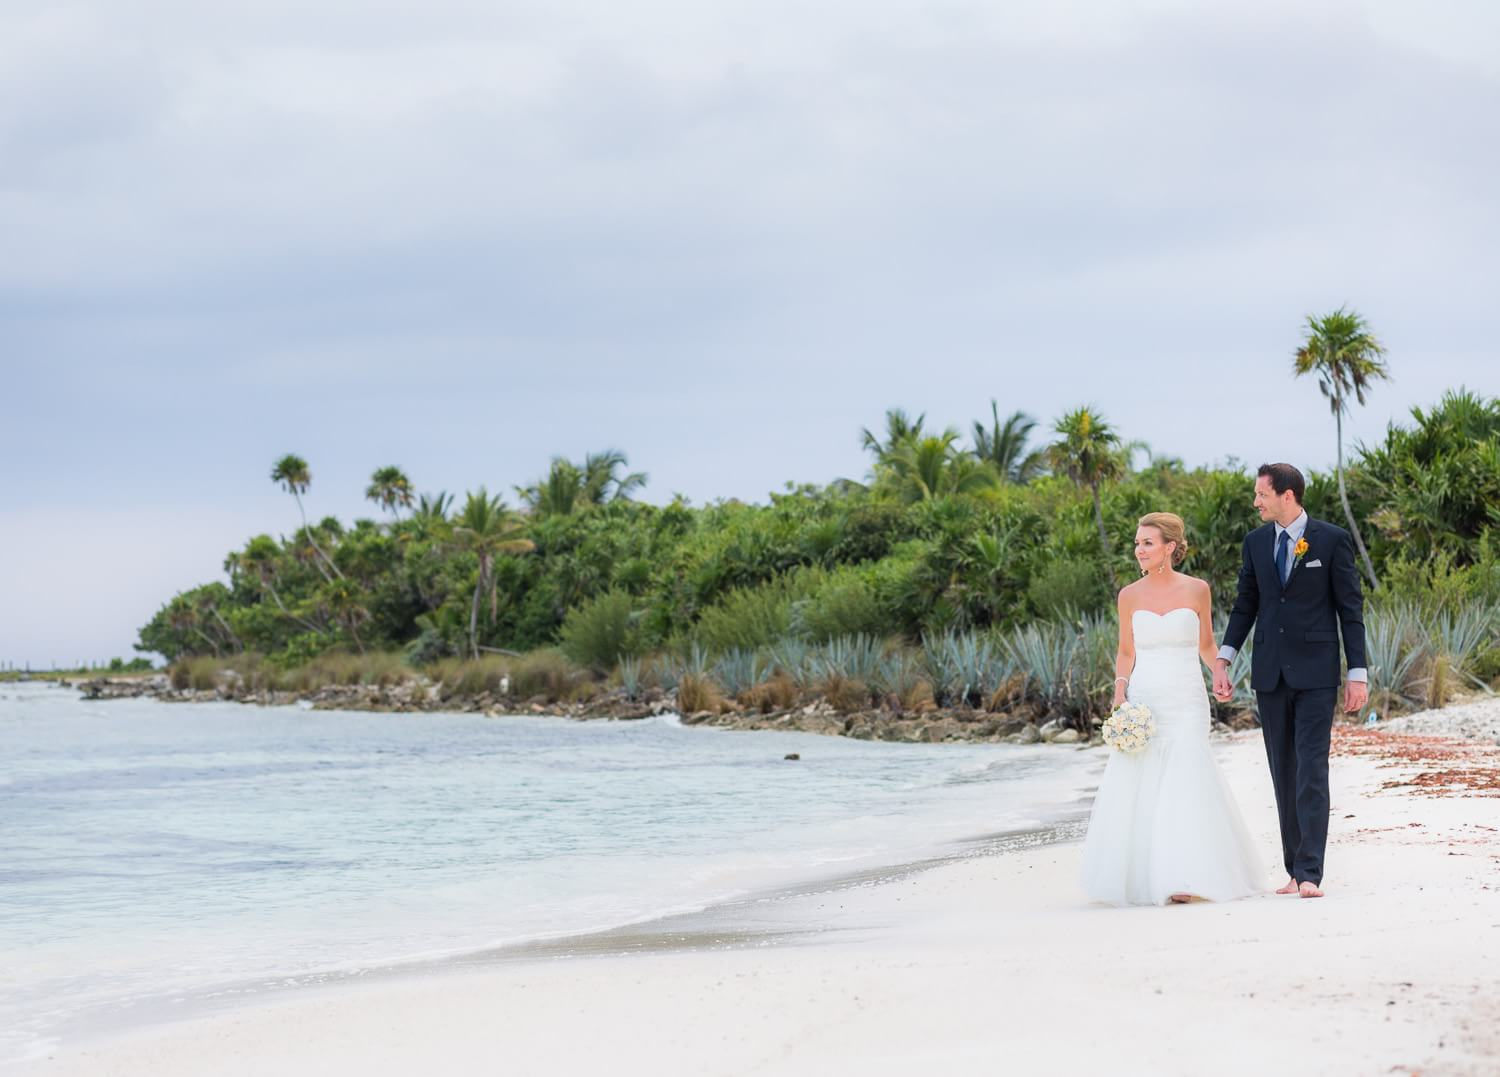 Ashely and Josh walking on beach at their Mexico wedding.